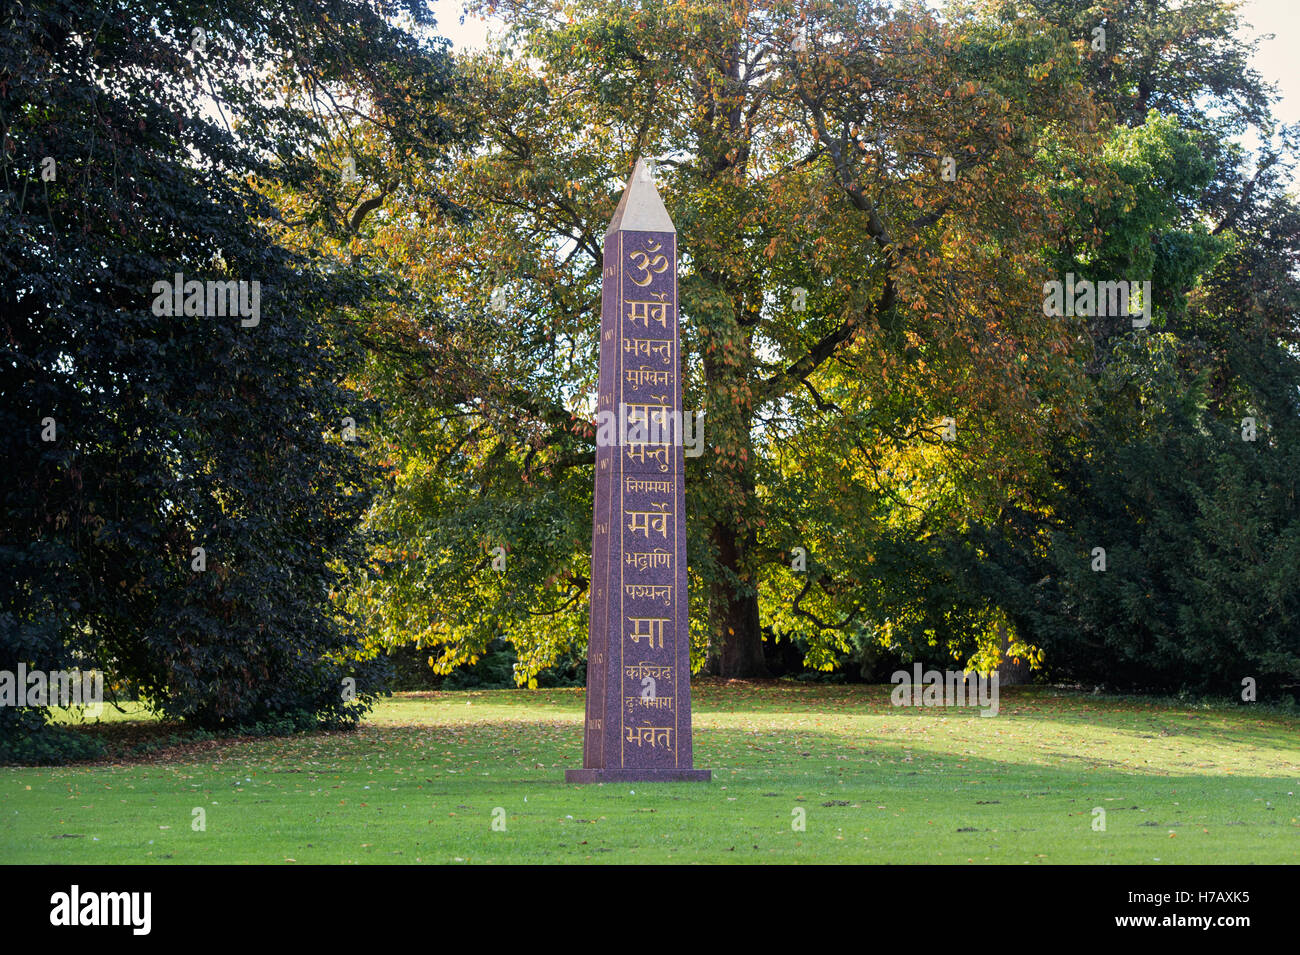 Om and Sanskrit on the peace Obelisk at Waterperry gardens in autumn, Wheatley, Oxfordshire. UK - Stock Image